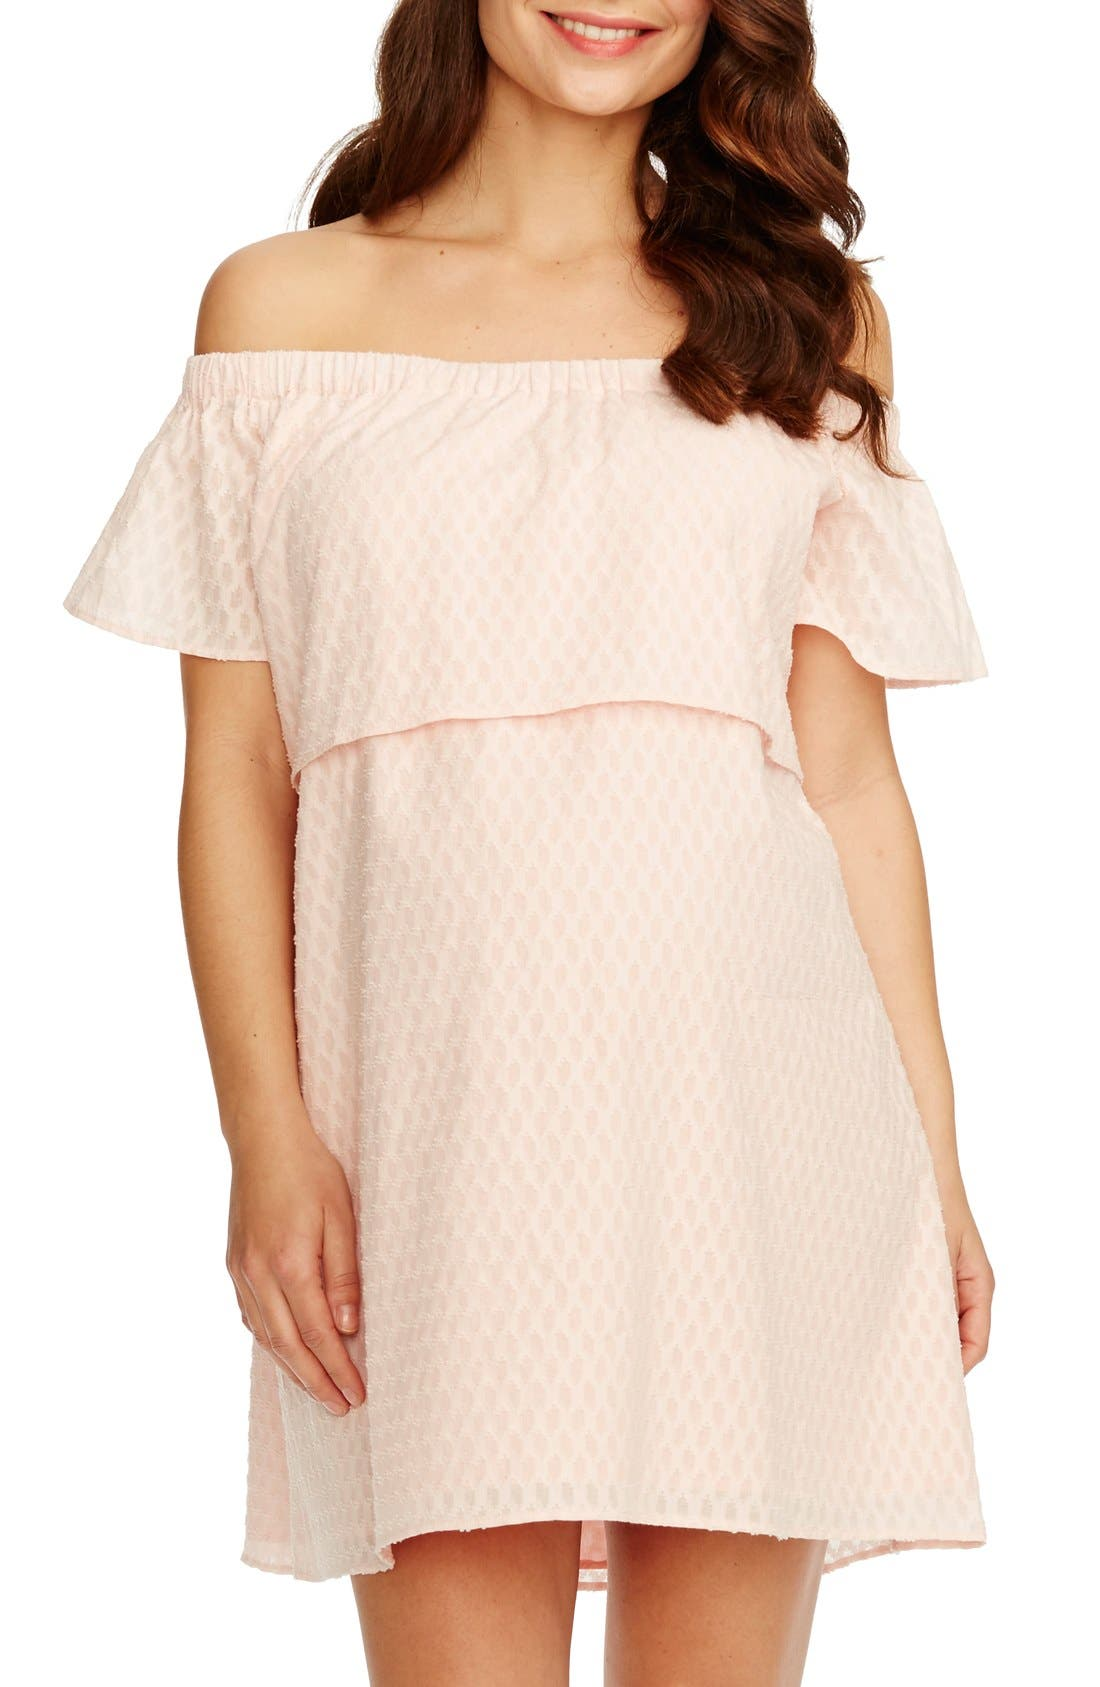 ROSIE POPE 'Camille' Off The Shoulder Maternity Dress in Ballet Pink